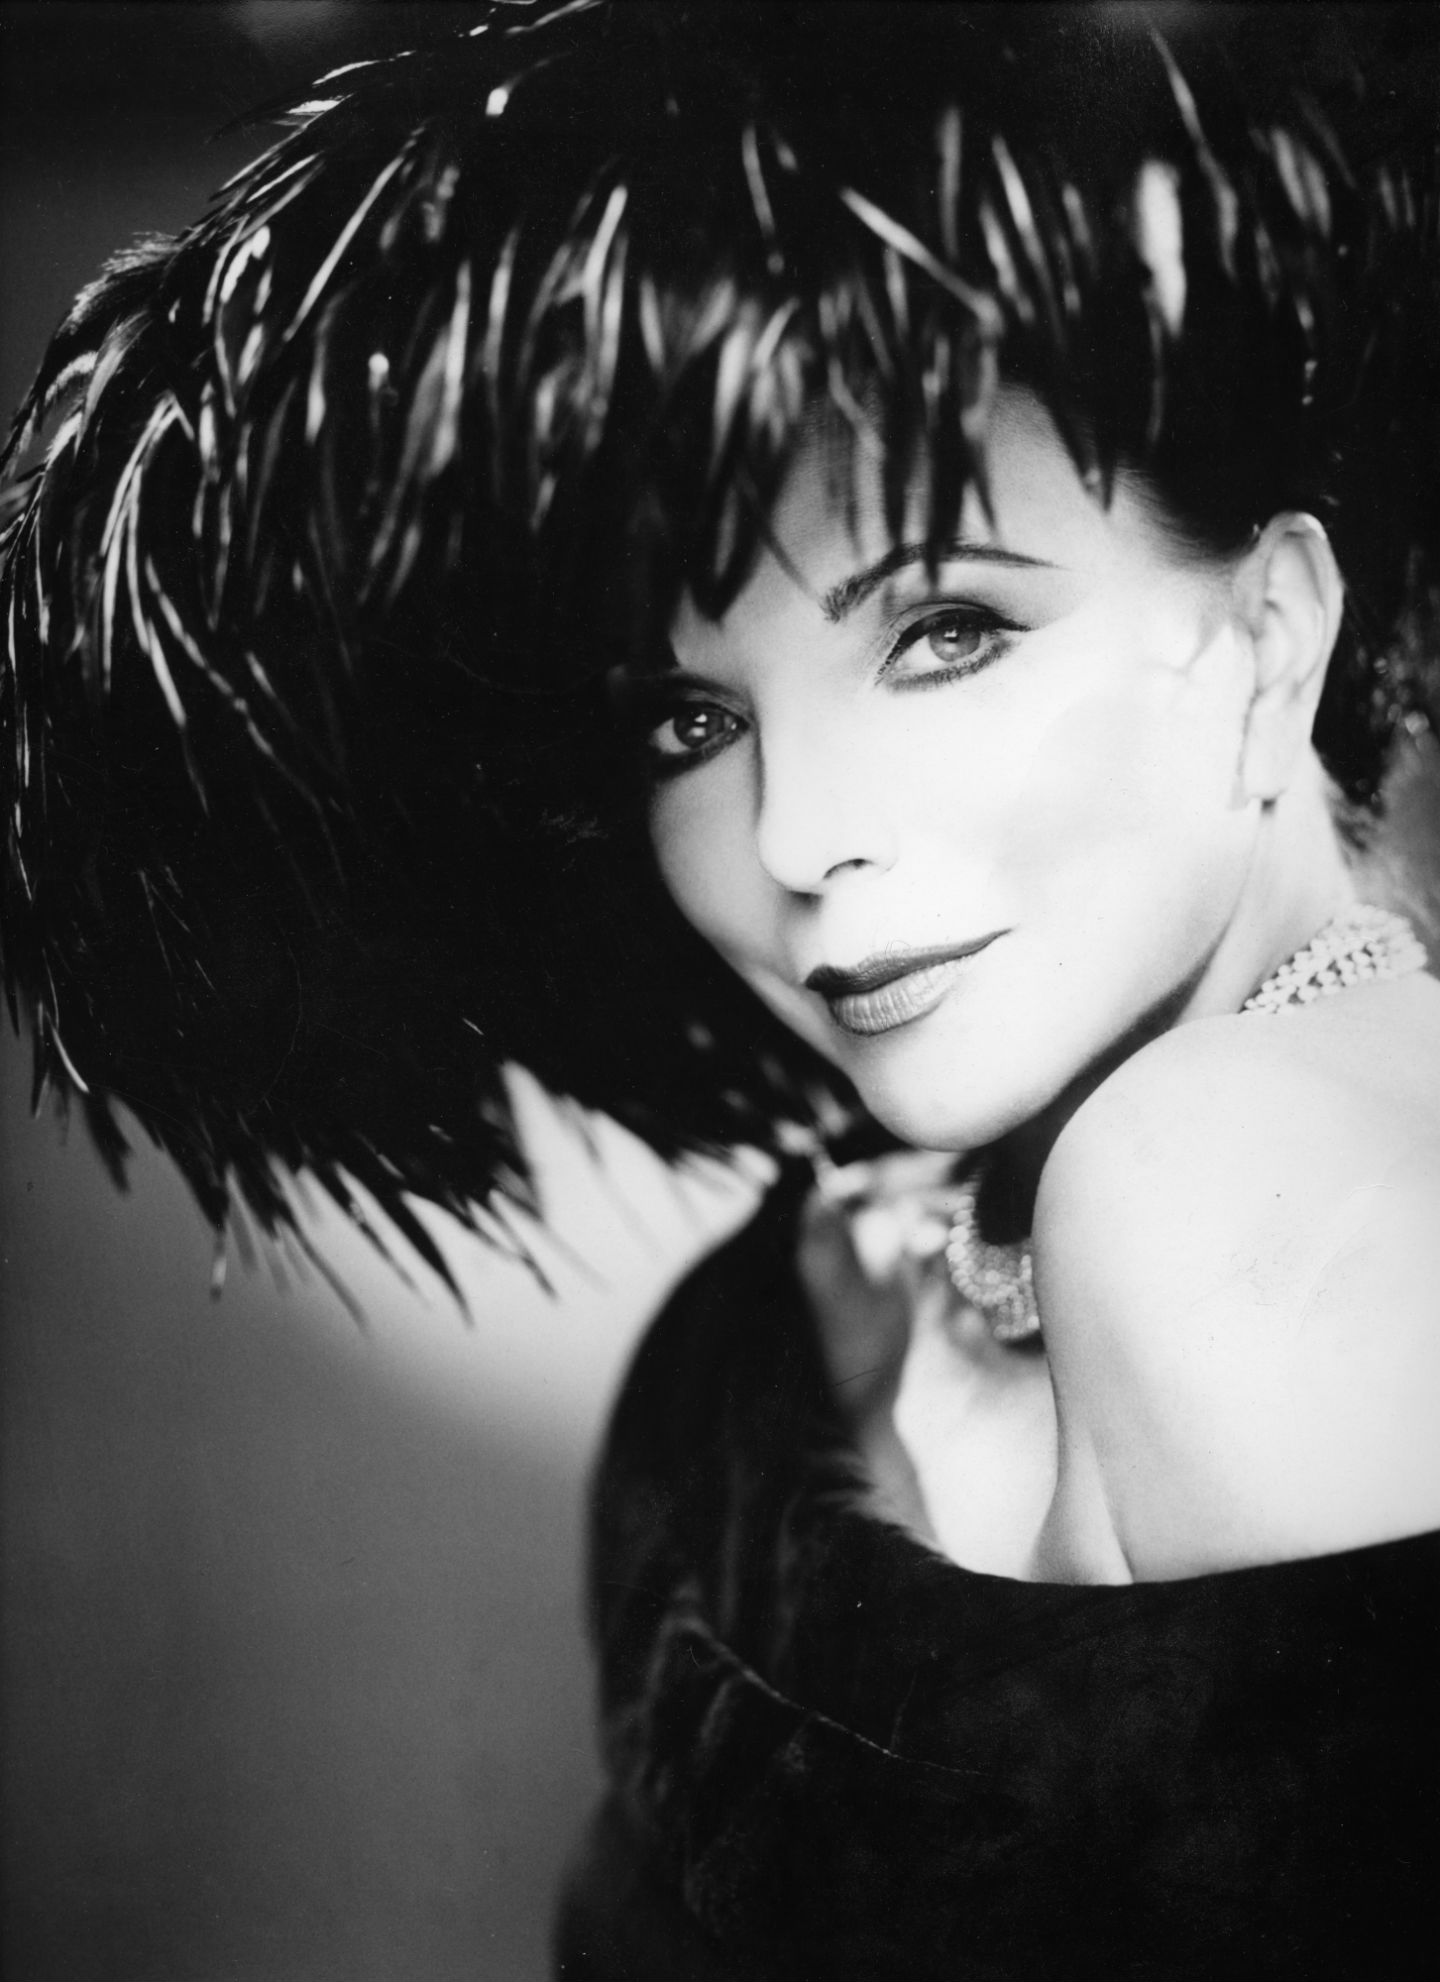 Joan Collins: she was made guest editor of Marie Claire and this picture was for that: an interesting character in a funny sort of way.